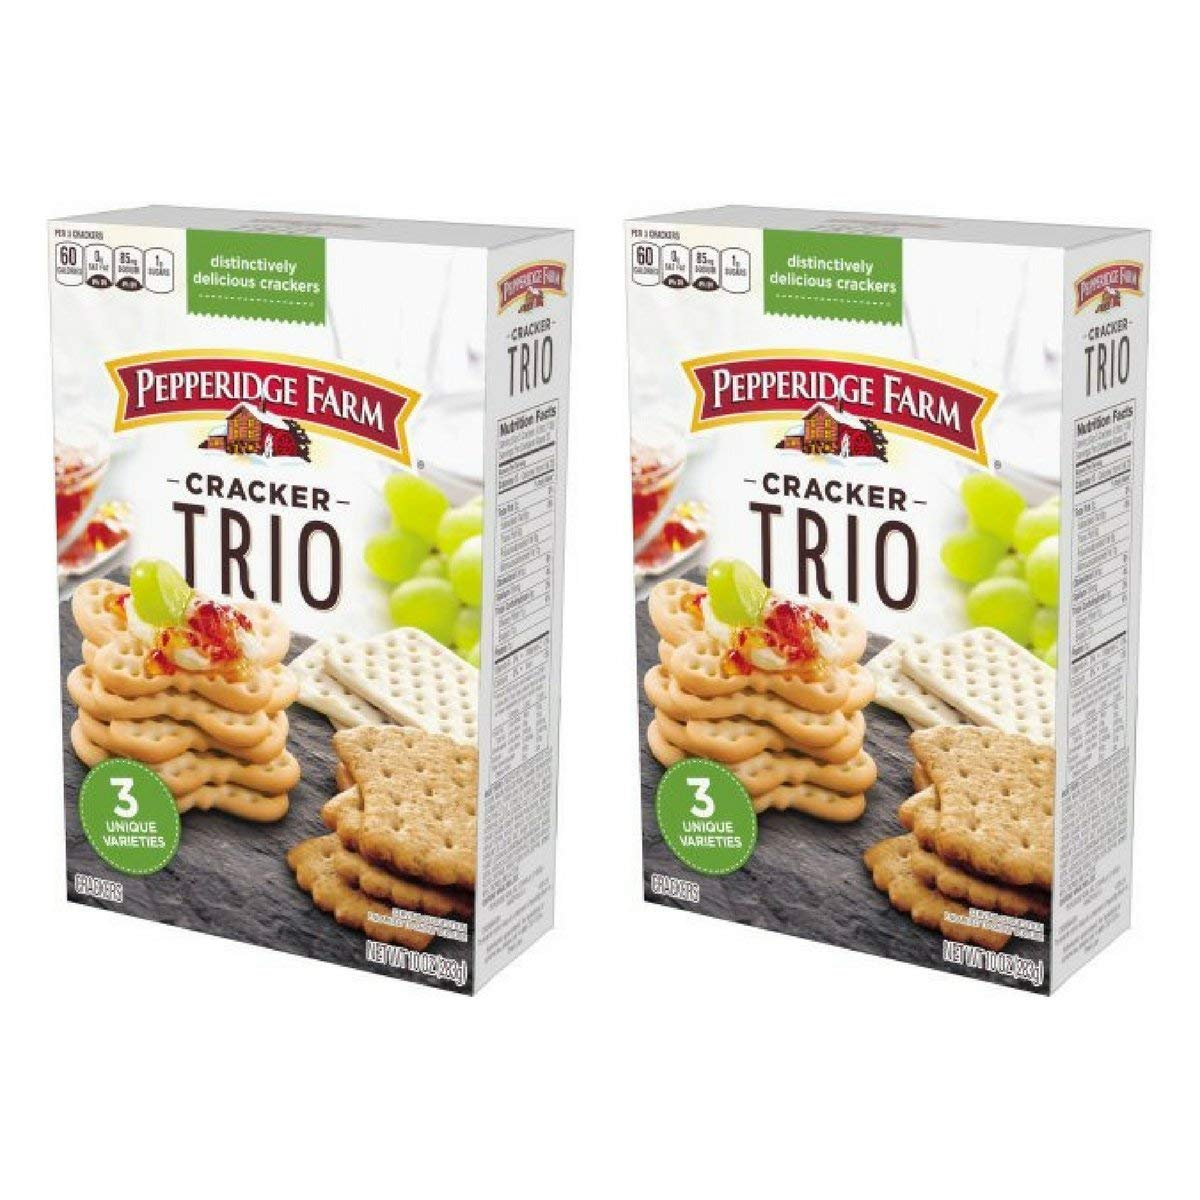 Pepperidge Farm Limited Special Price Trio Cracker 2 Bargain sale Pack 10 Ounce